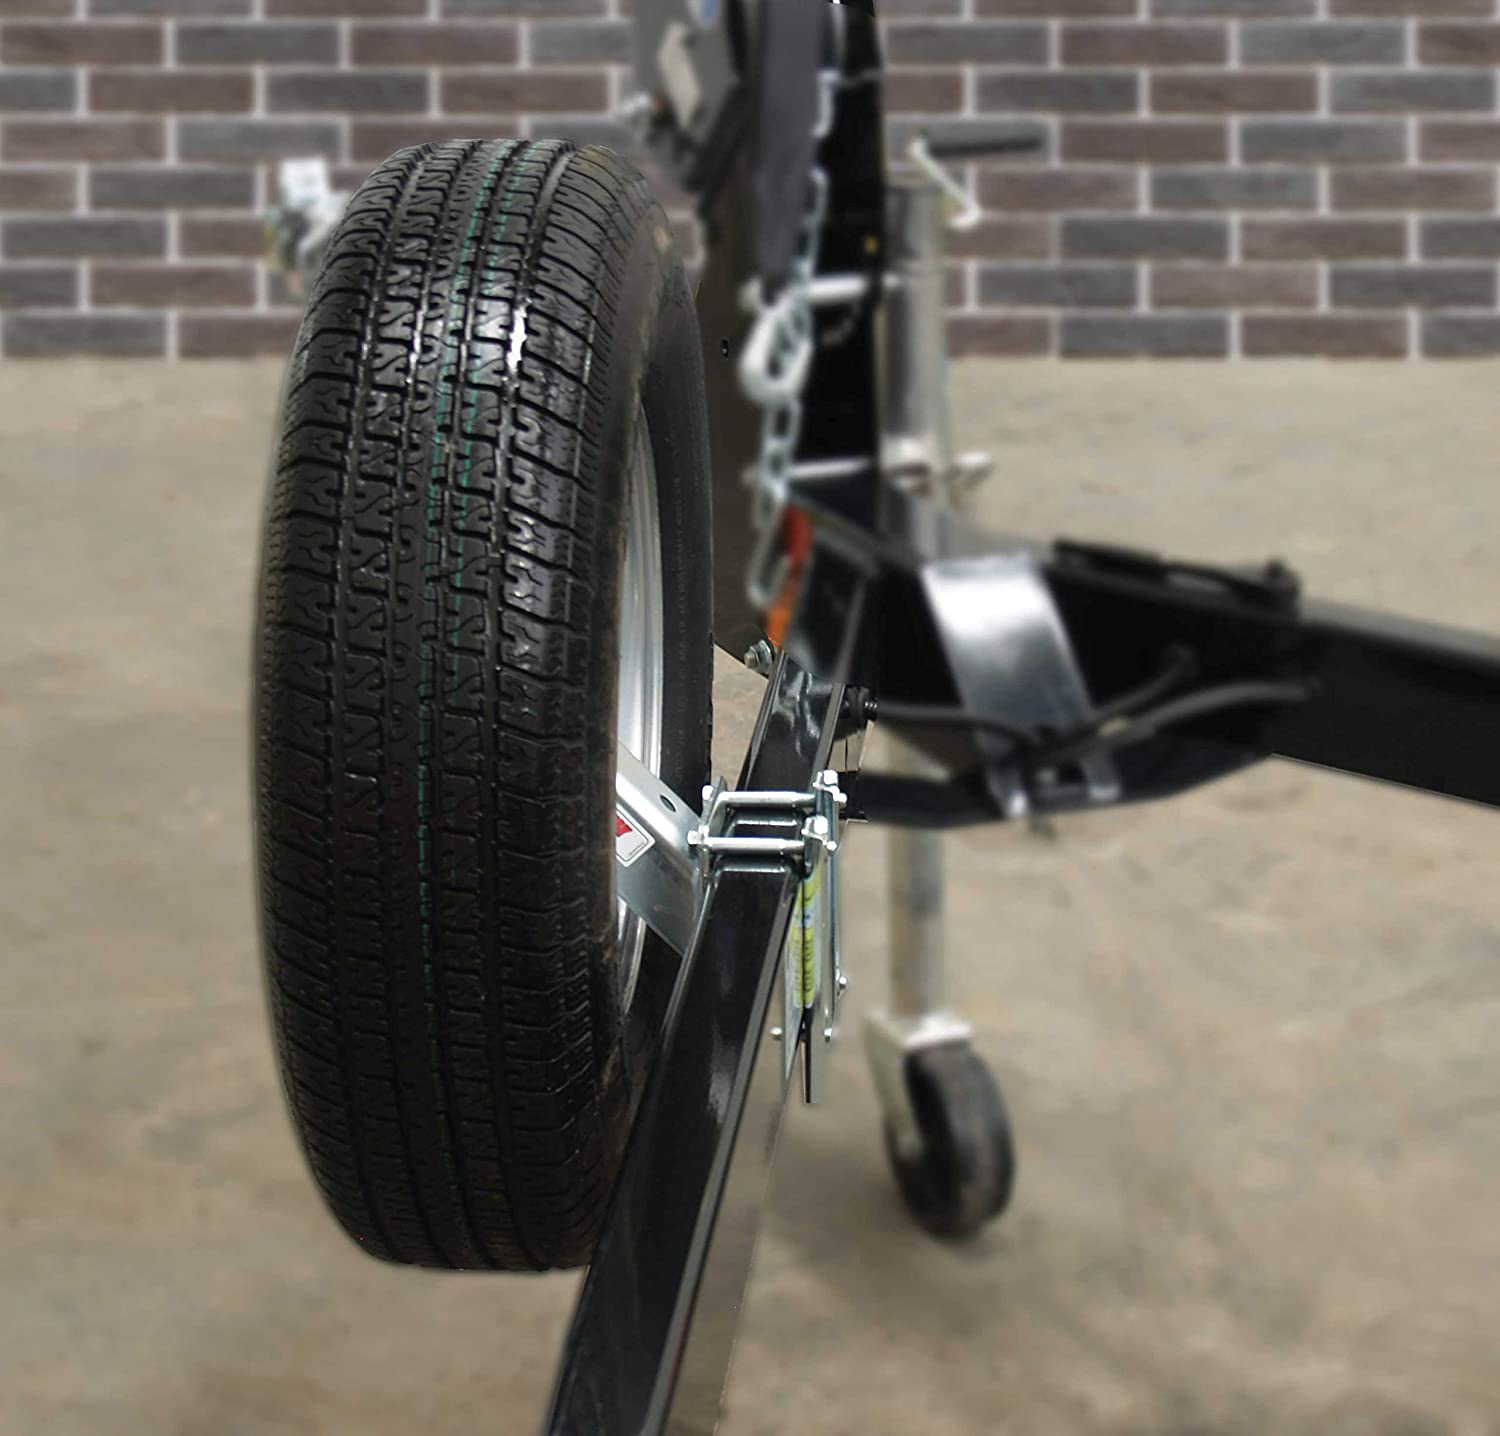 Extreme Max 3004.4553 Economy Spare Tire Carrier